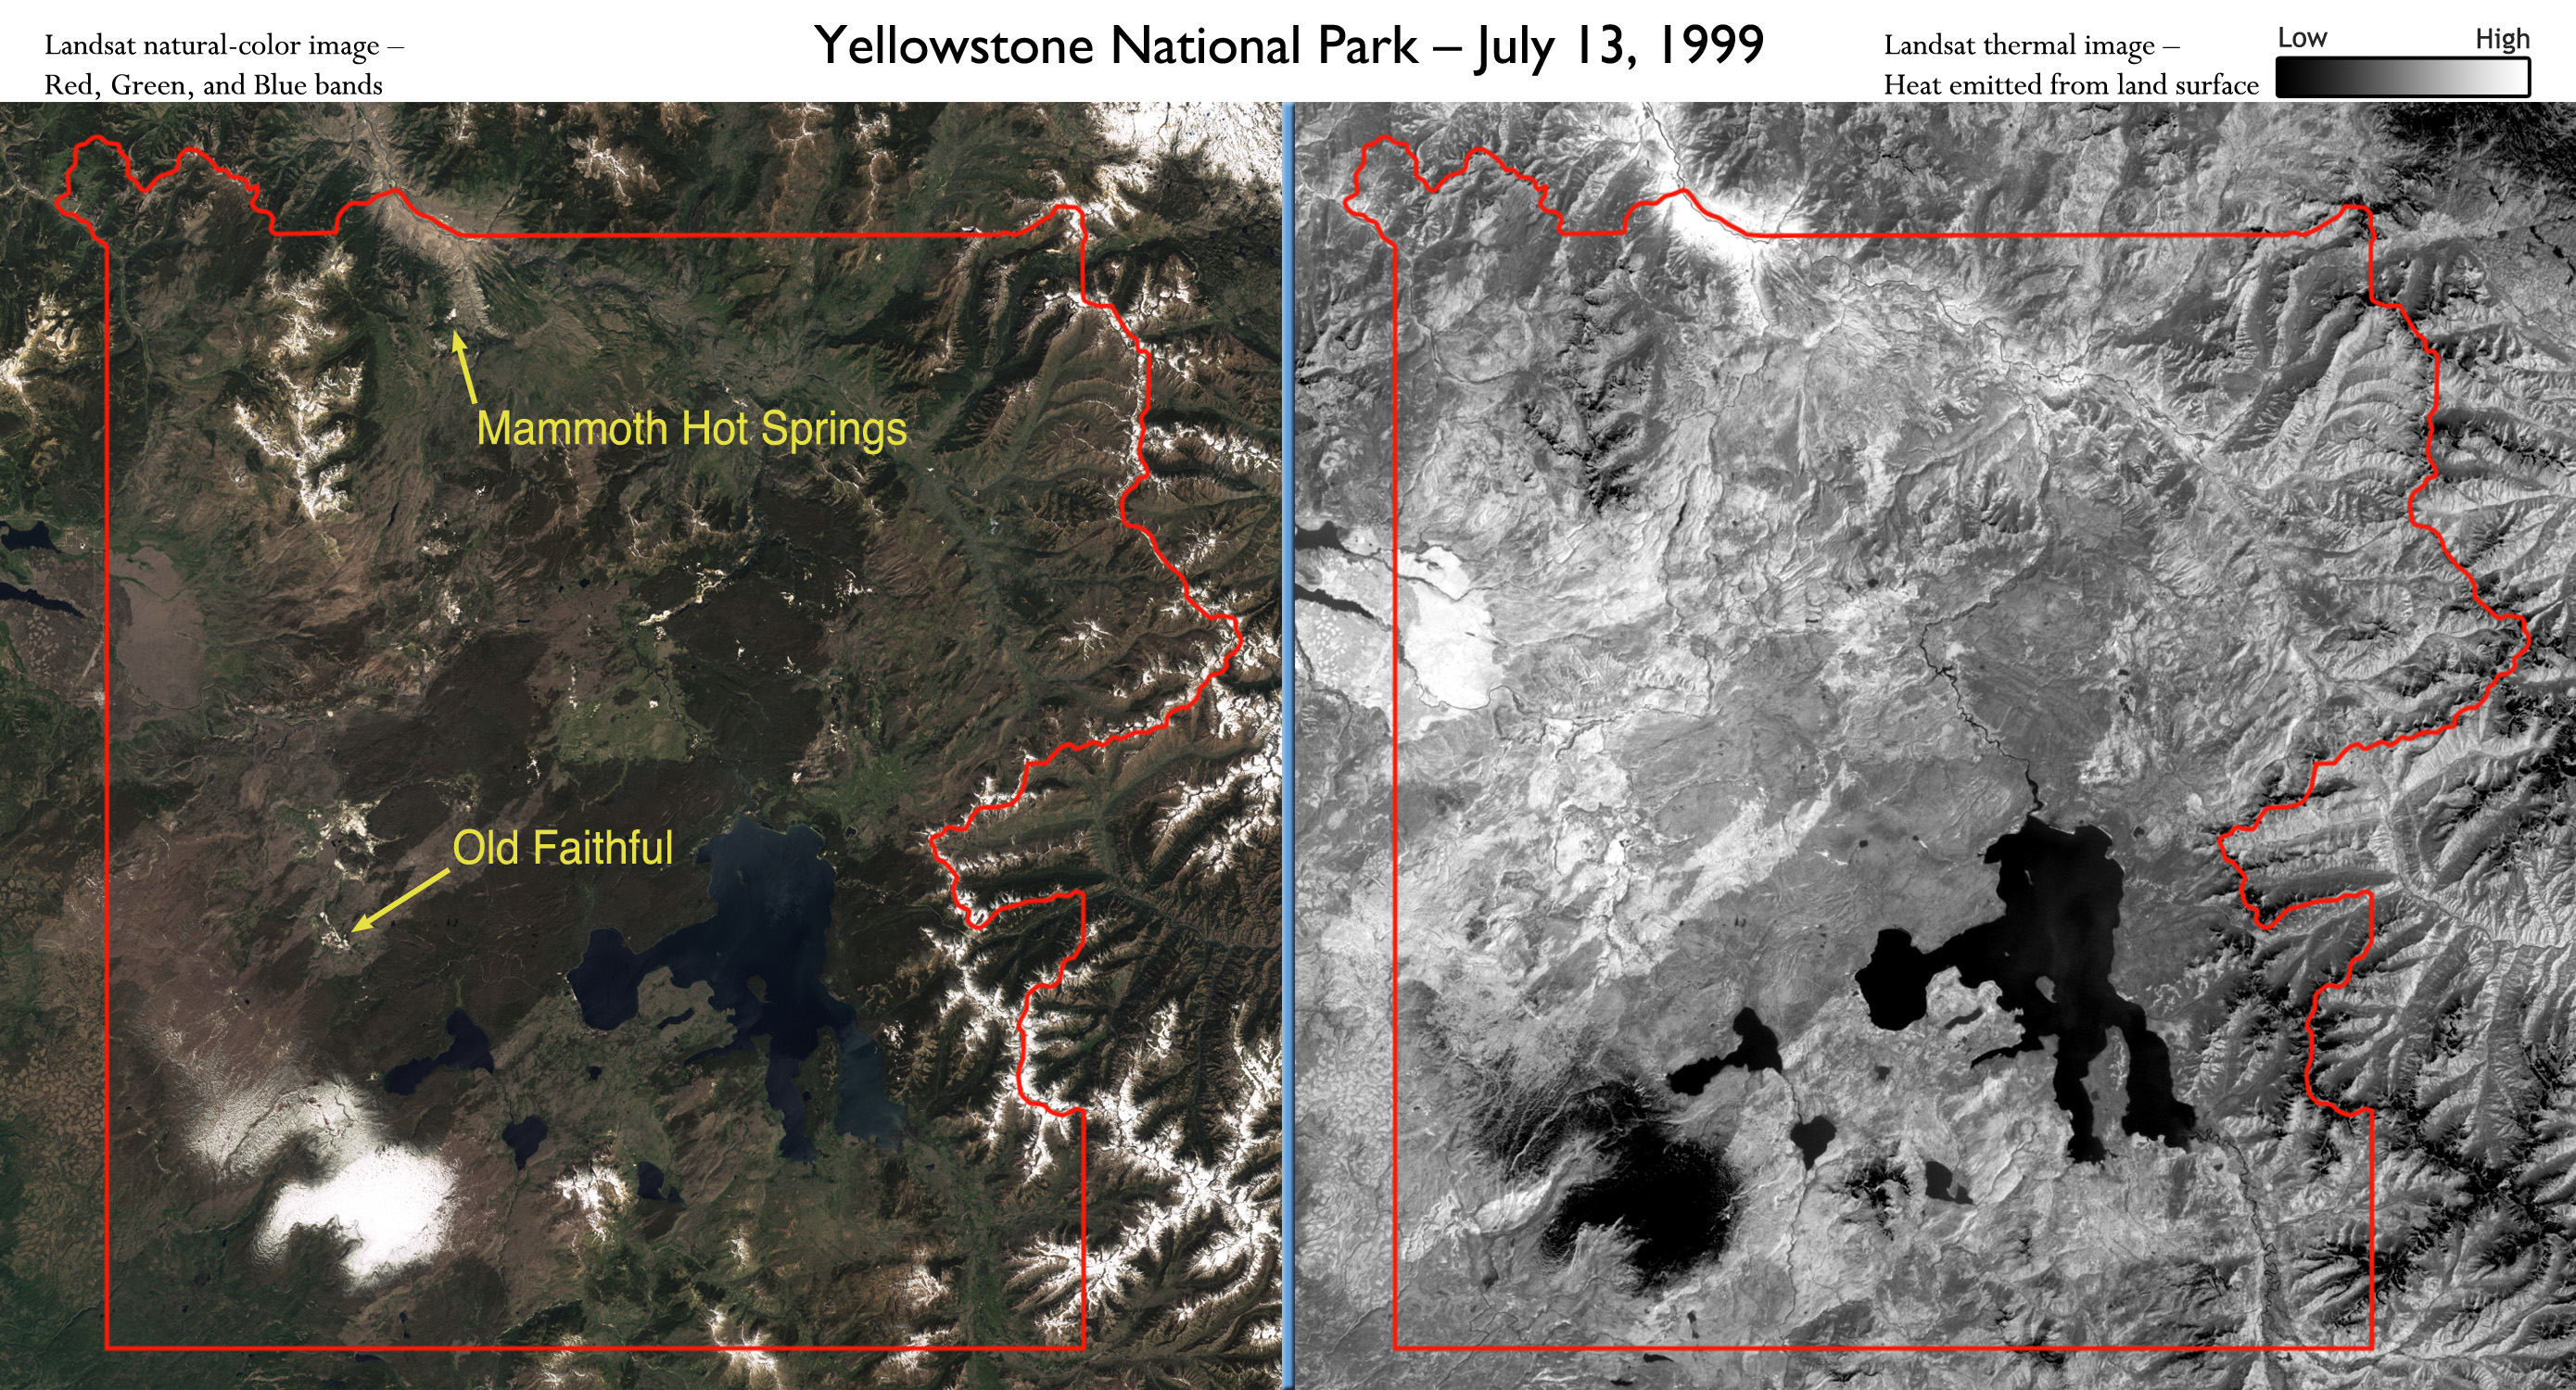 NASA - Landsat satellites Track Yellowstone's Underground Heat